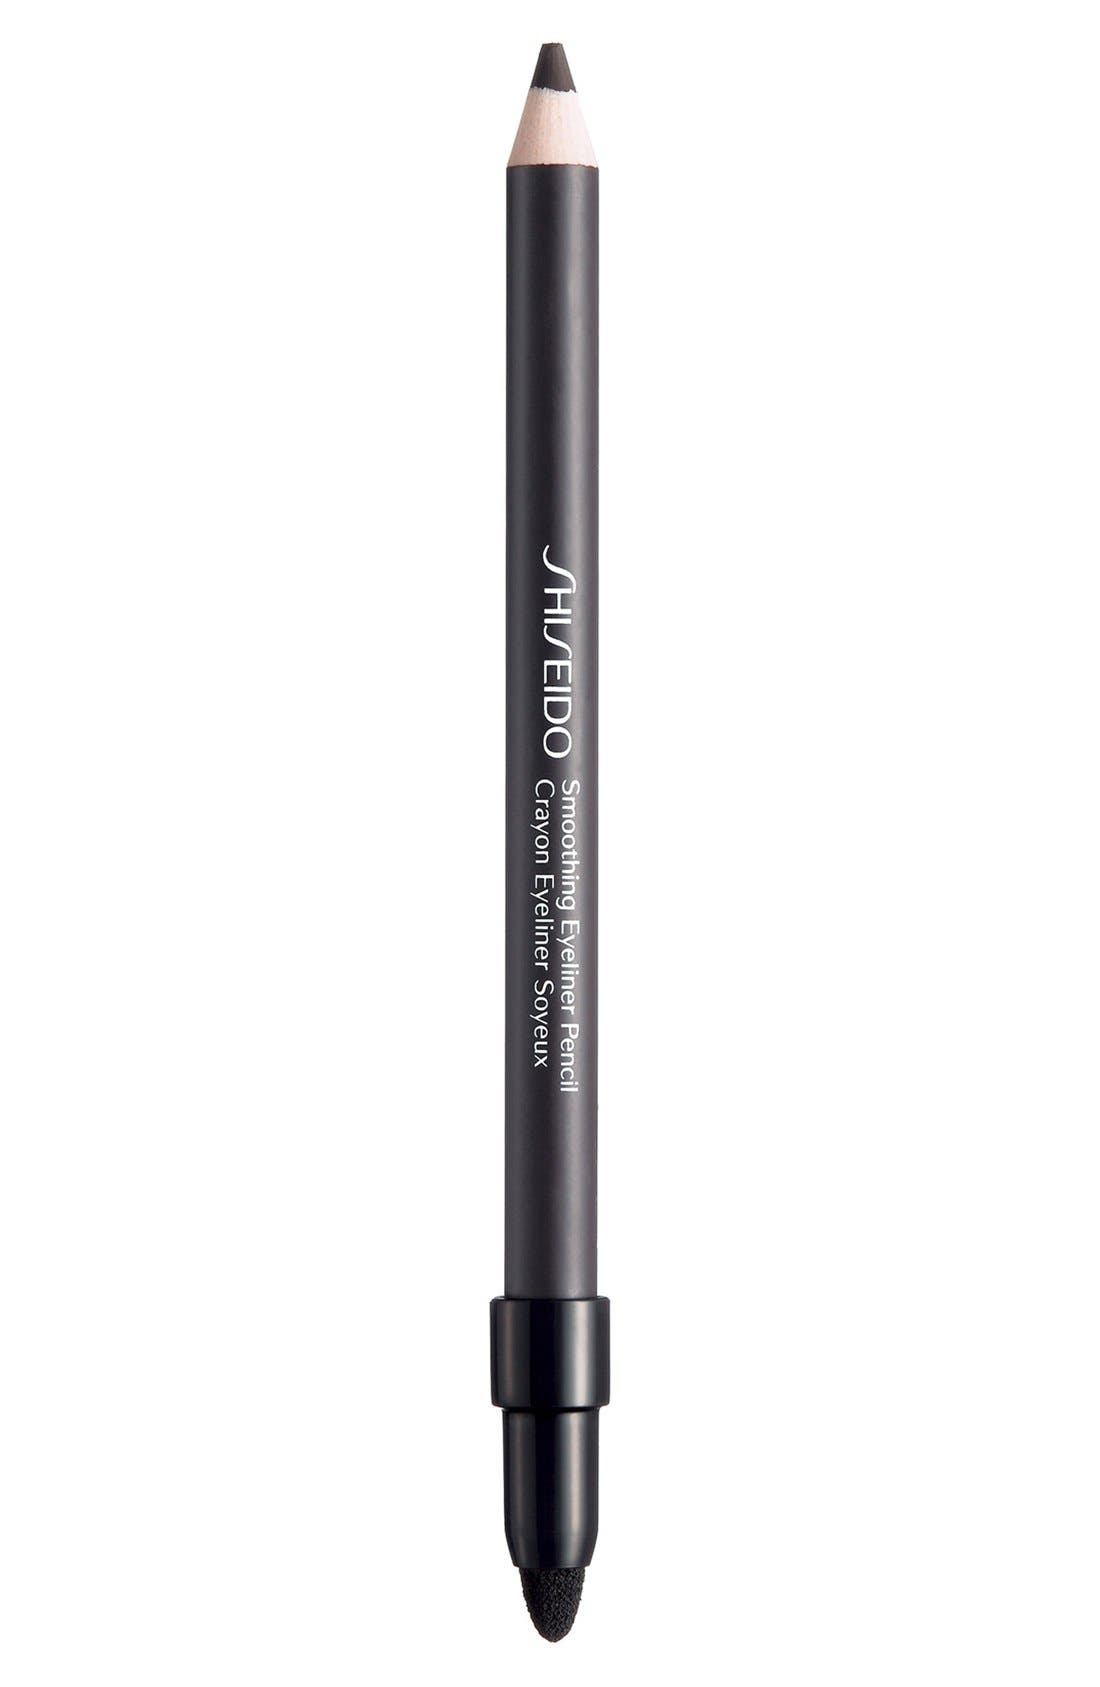 'The Makeup' Smoothing Eyeliner Pencil,                             Alternate thumbnail 6, color,